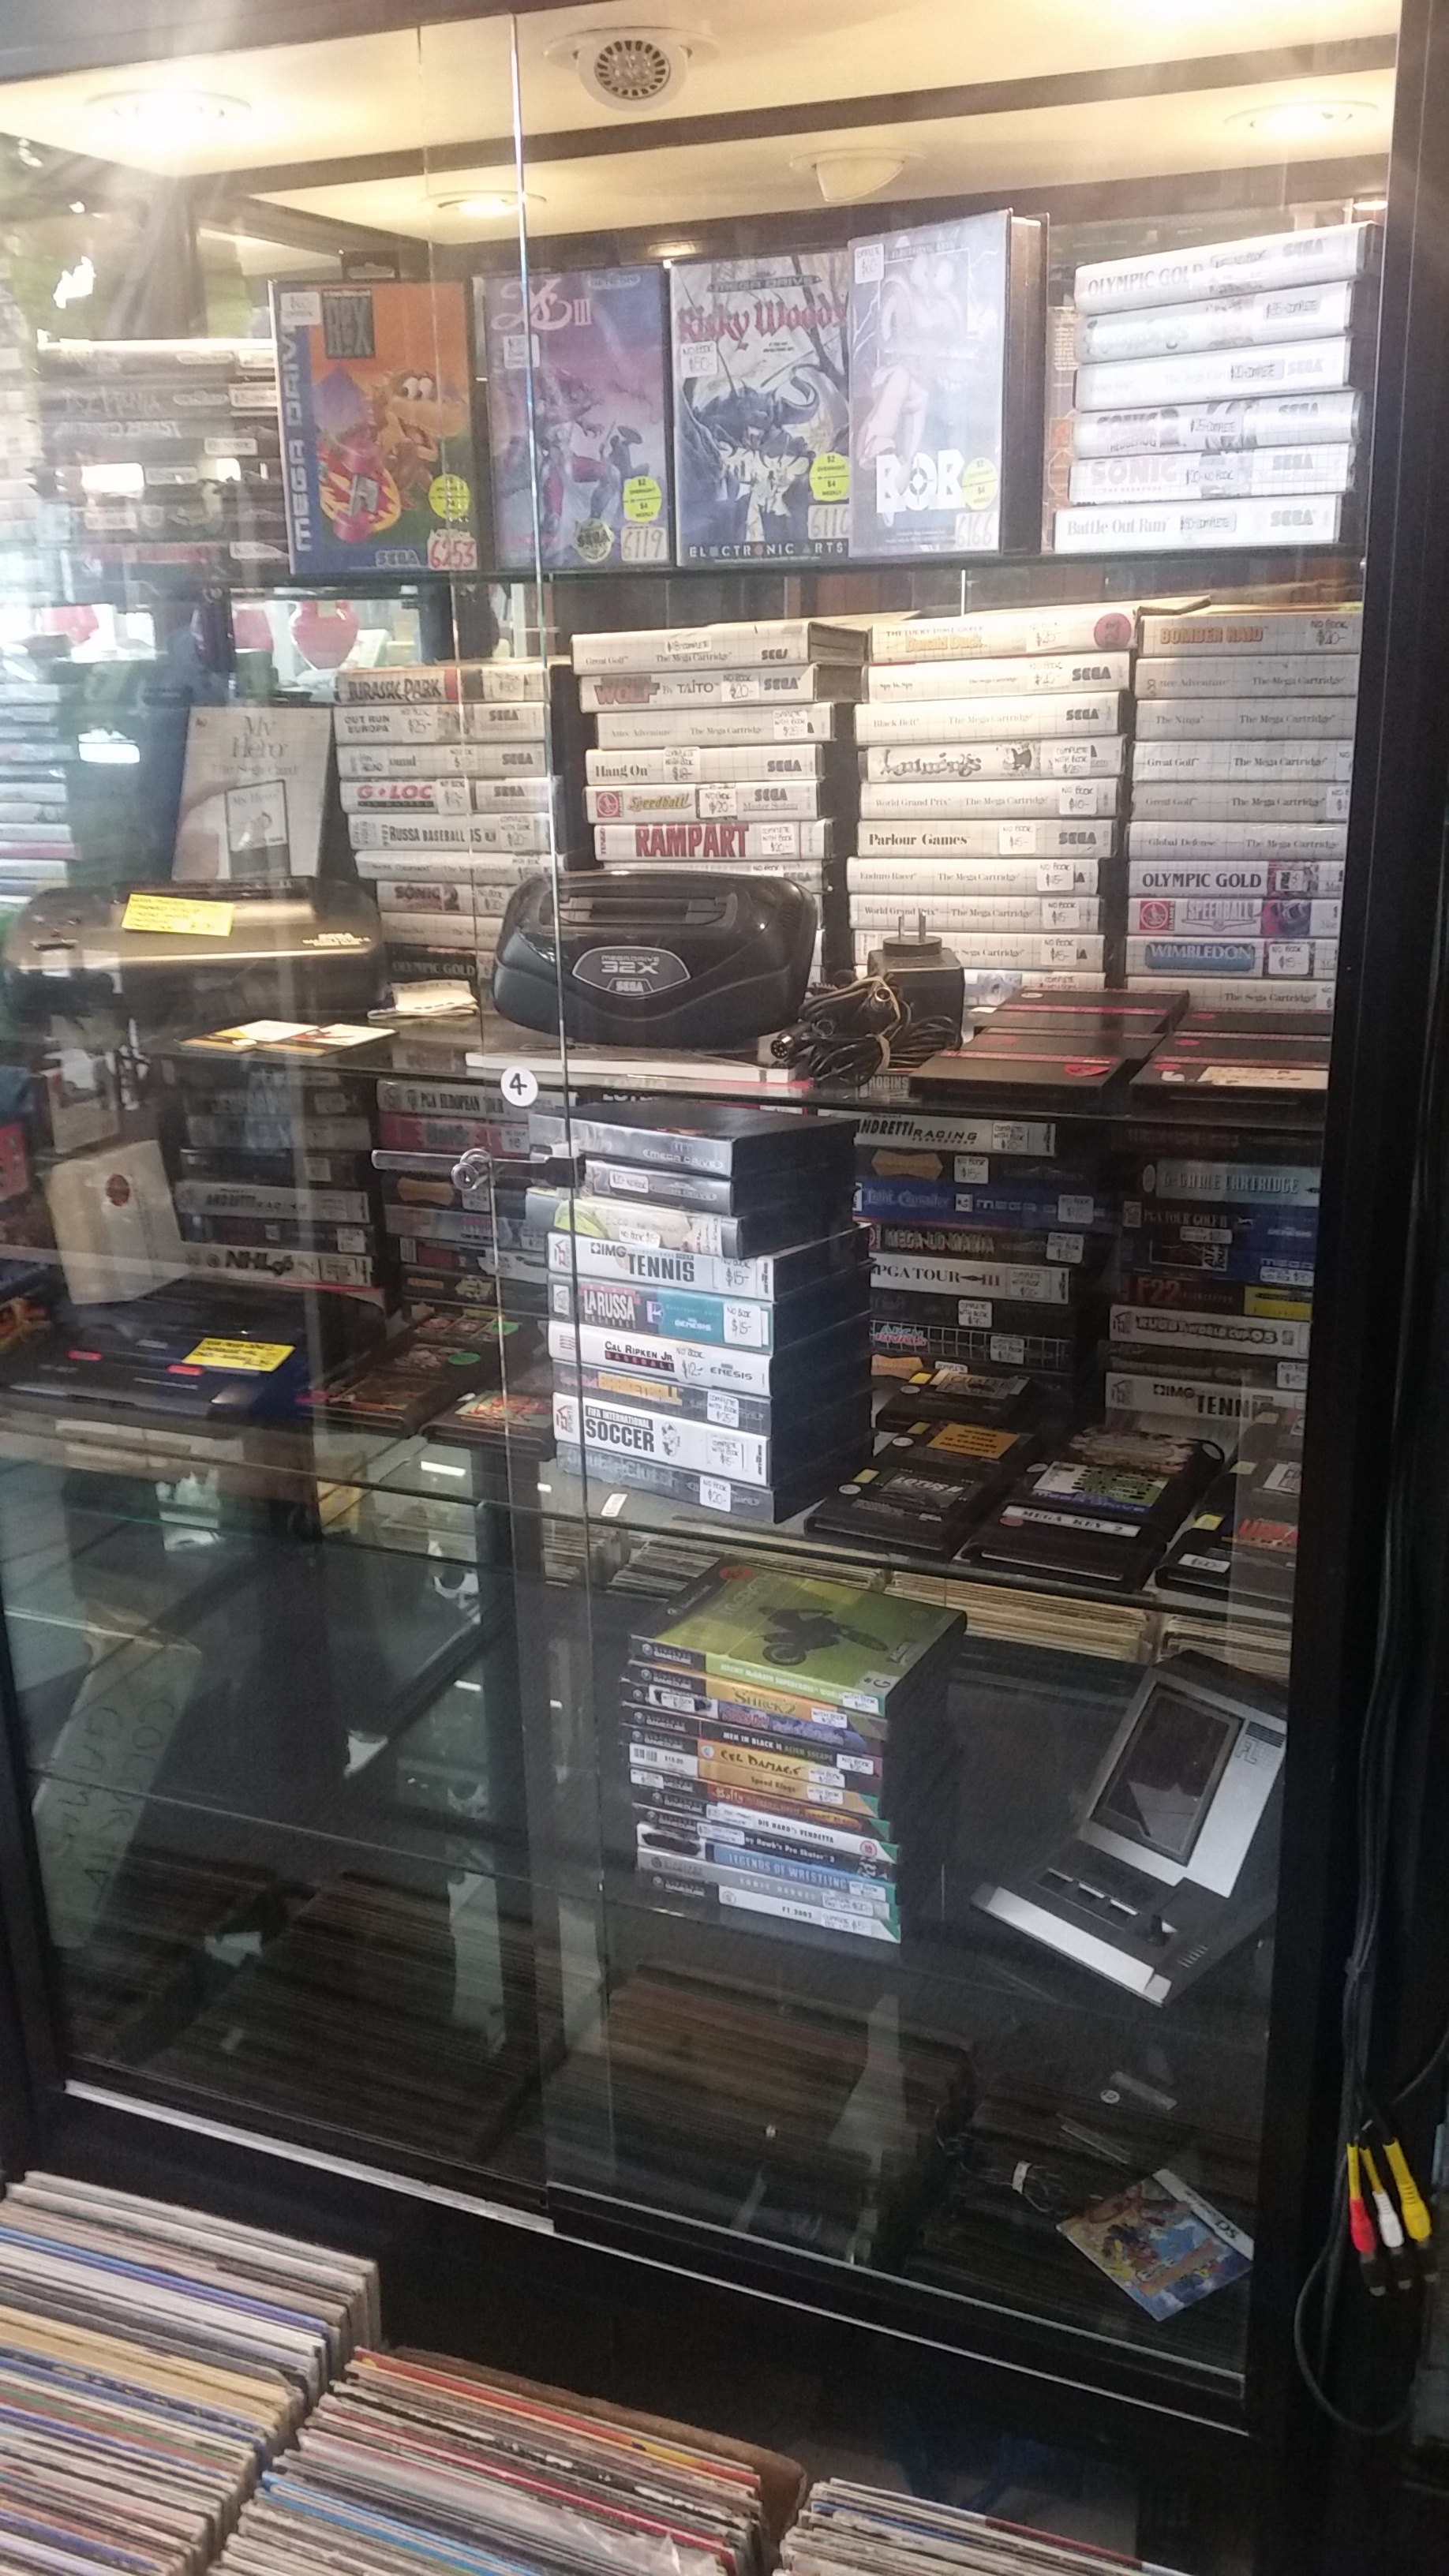 WE HAVE IN STOCK SEGA MASTER SYSTEM 2 CONSOLES,BOTH ORIGINAL AND MODIFIED WITH AV OUTPUT CONVERSION TO PLUG STRAIGHT INTO THE AV INPUTS ON YOUR TV. ALSO HAVE SEVERAL MEGA DRIVE CONSOLES...